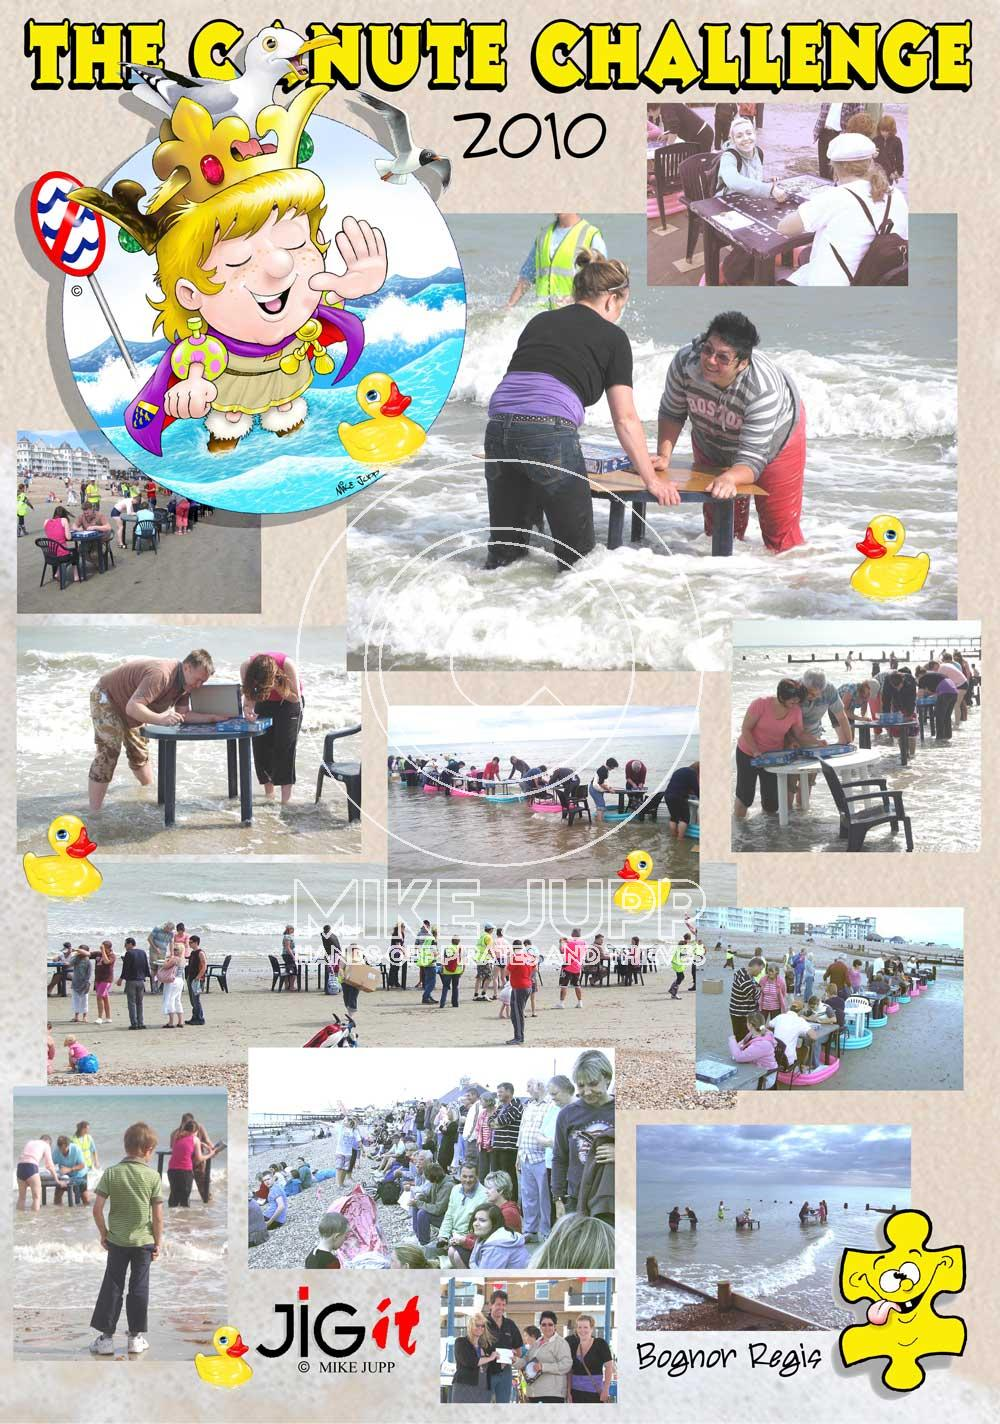 The Canute Challenge